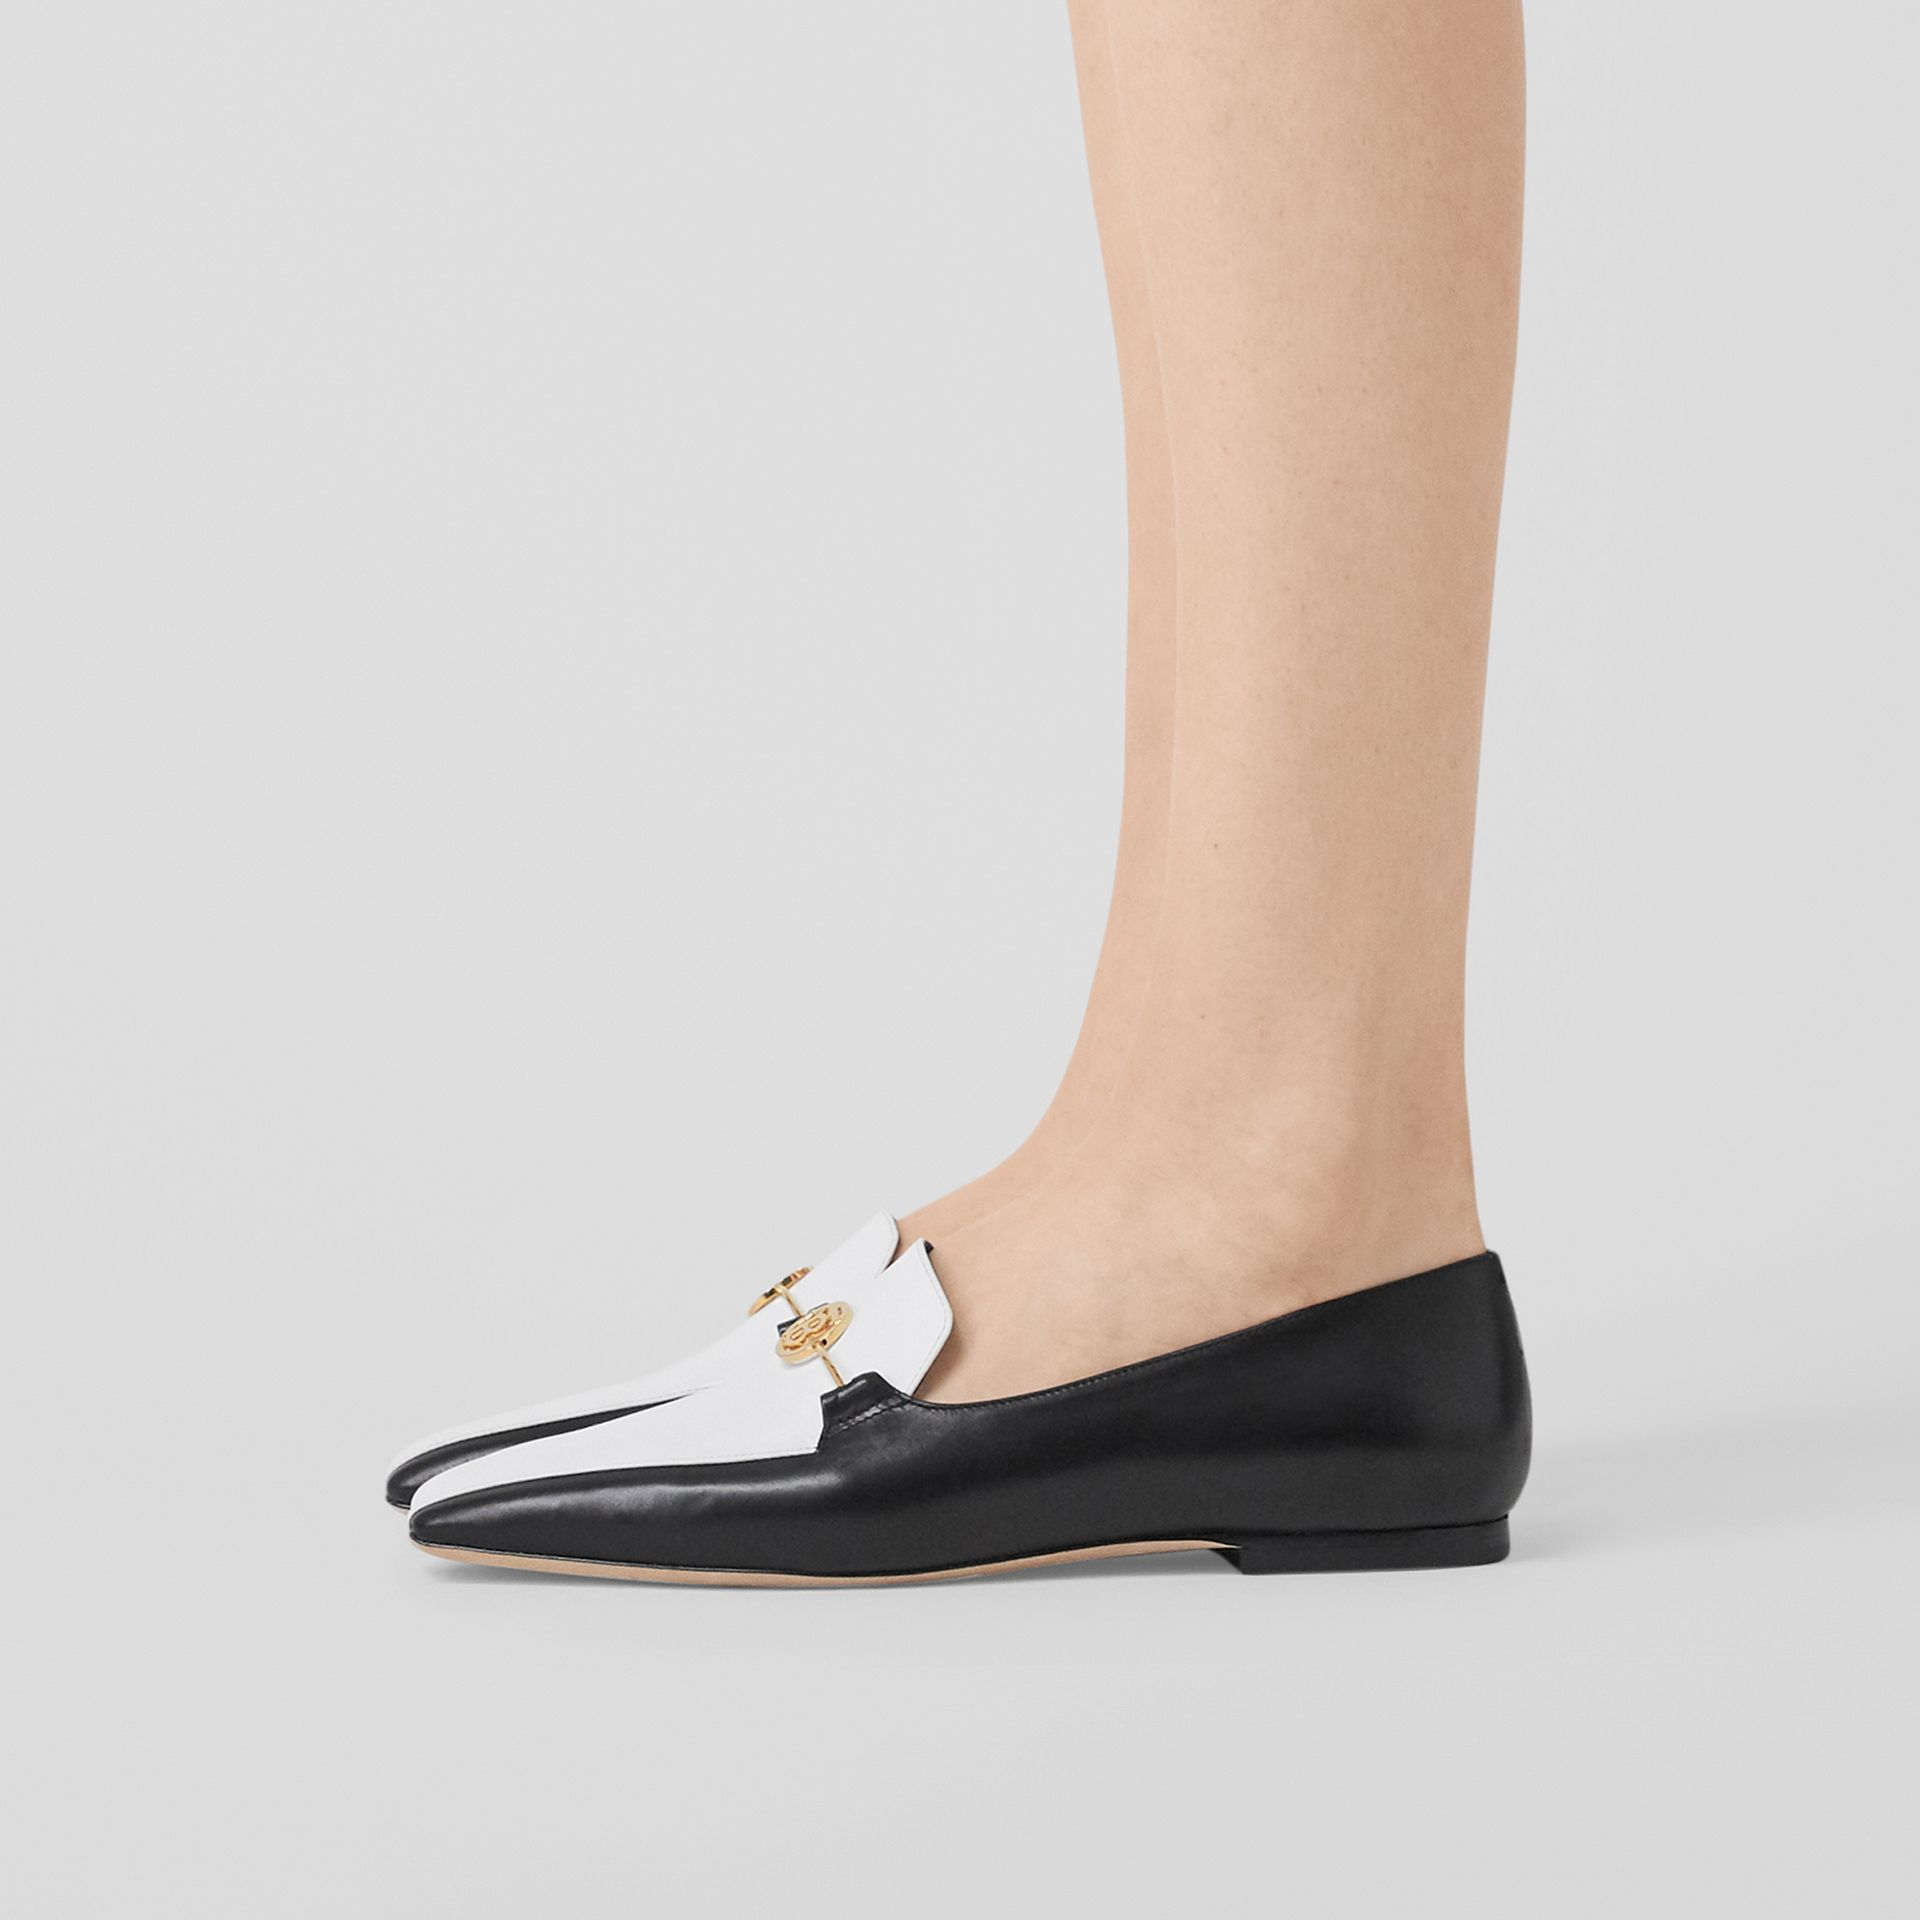 Monogram Motif Two-tone Leather Loafers in Black/white - Women | Burberry United States - gallery image 2